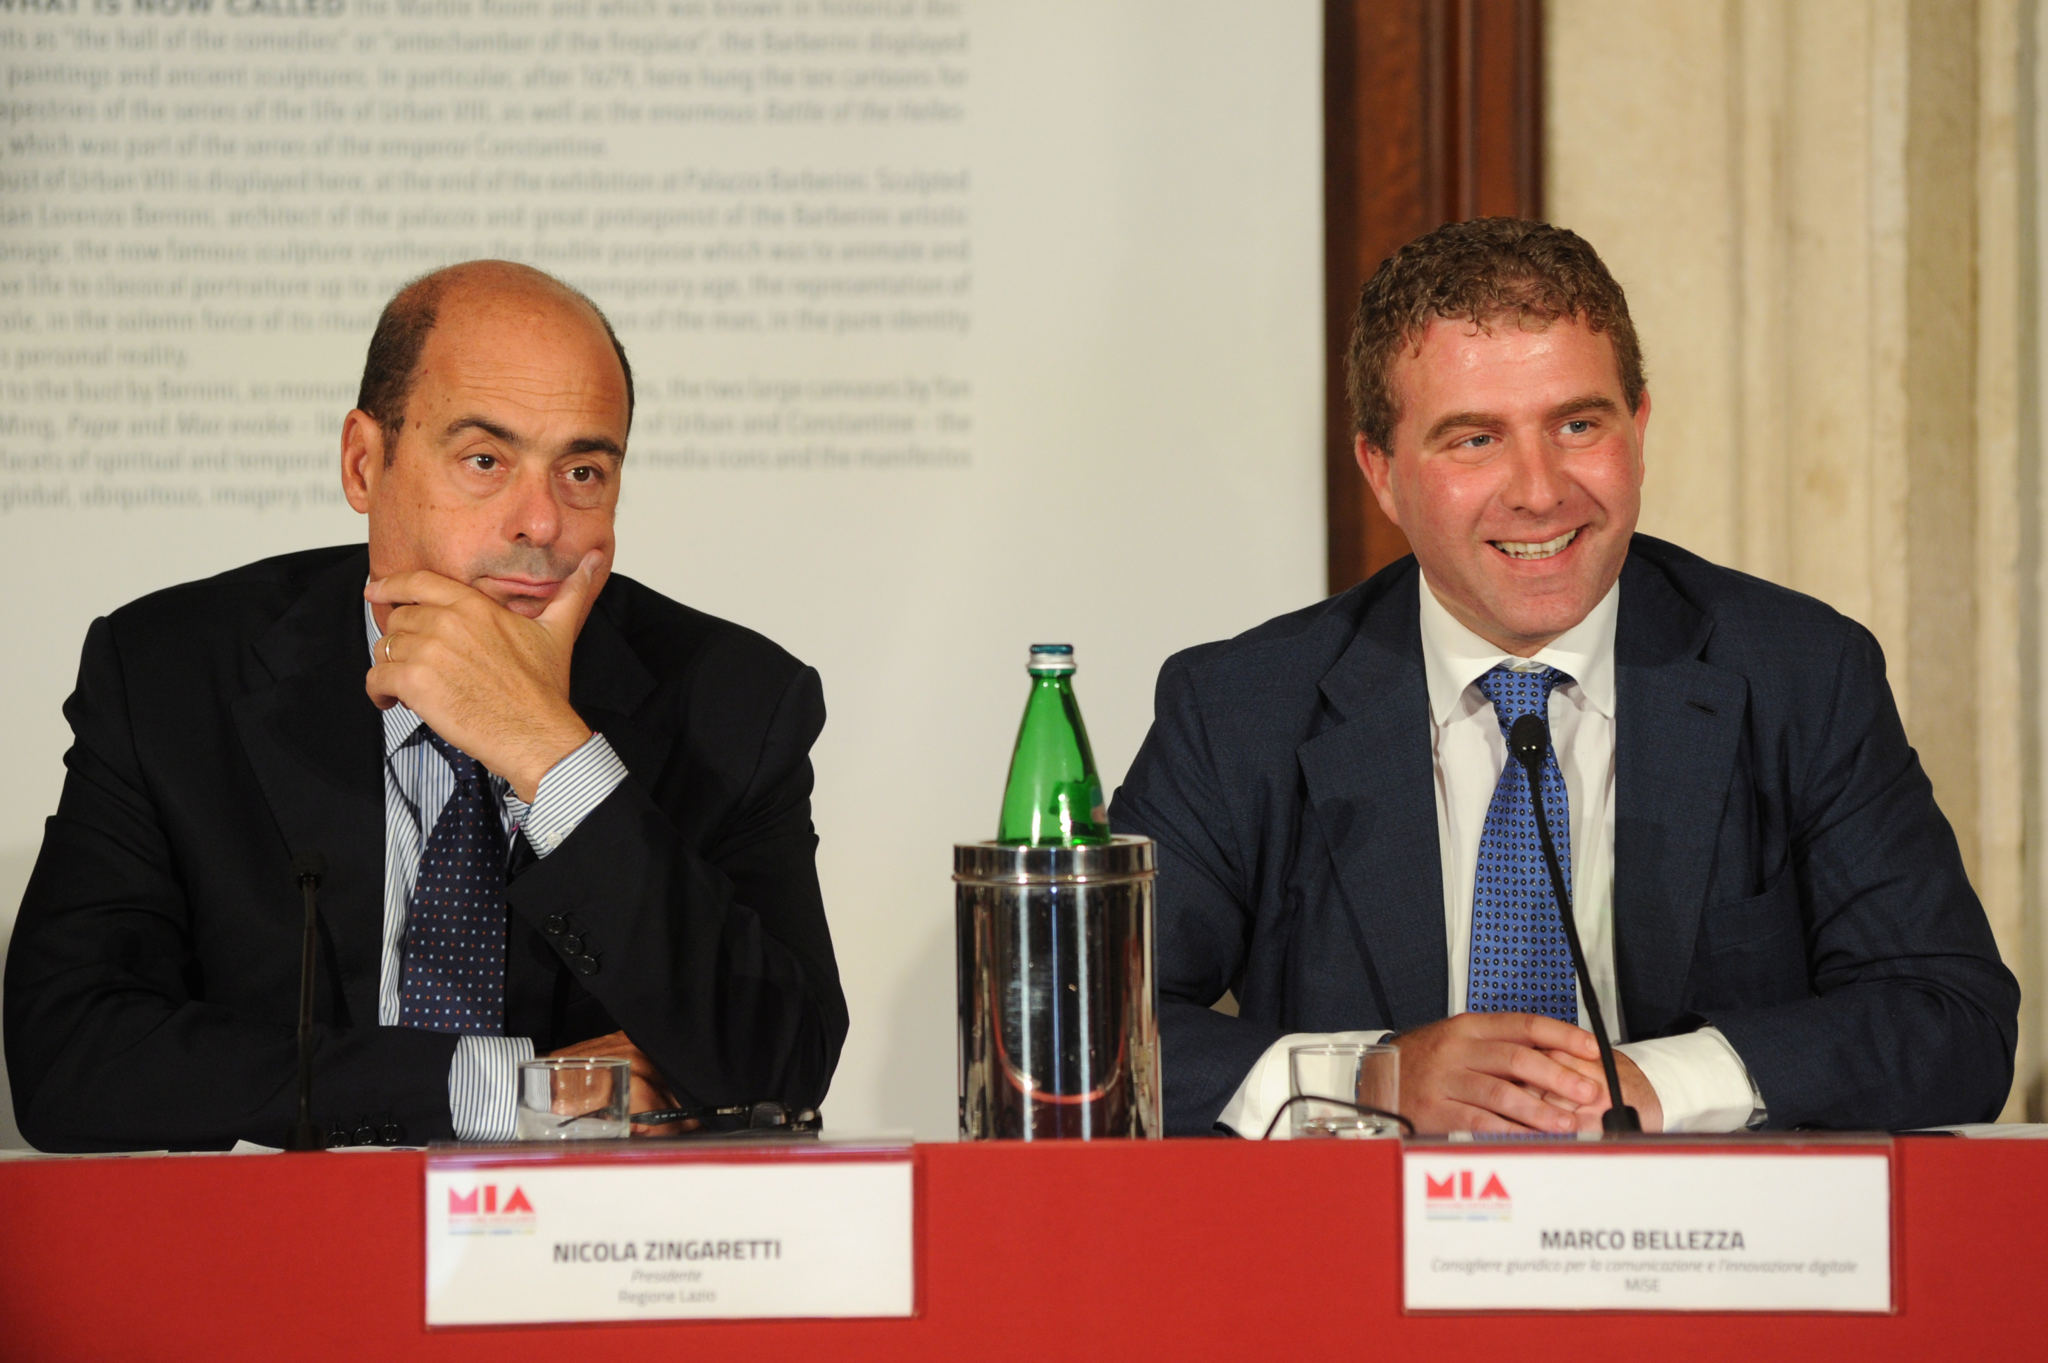 Nicola Zingaretti (Lazio Region President), Marco Bellezza (MISE Legal Counsel on Communication and Digital Innovation)